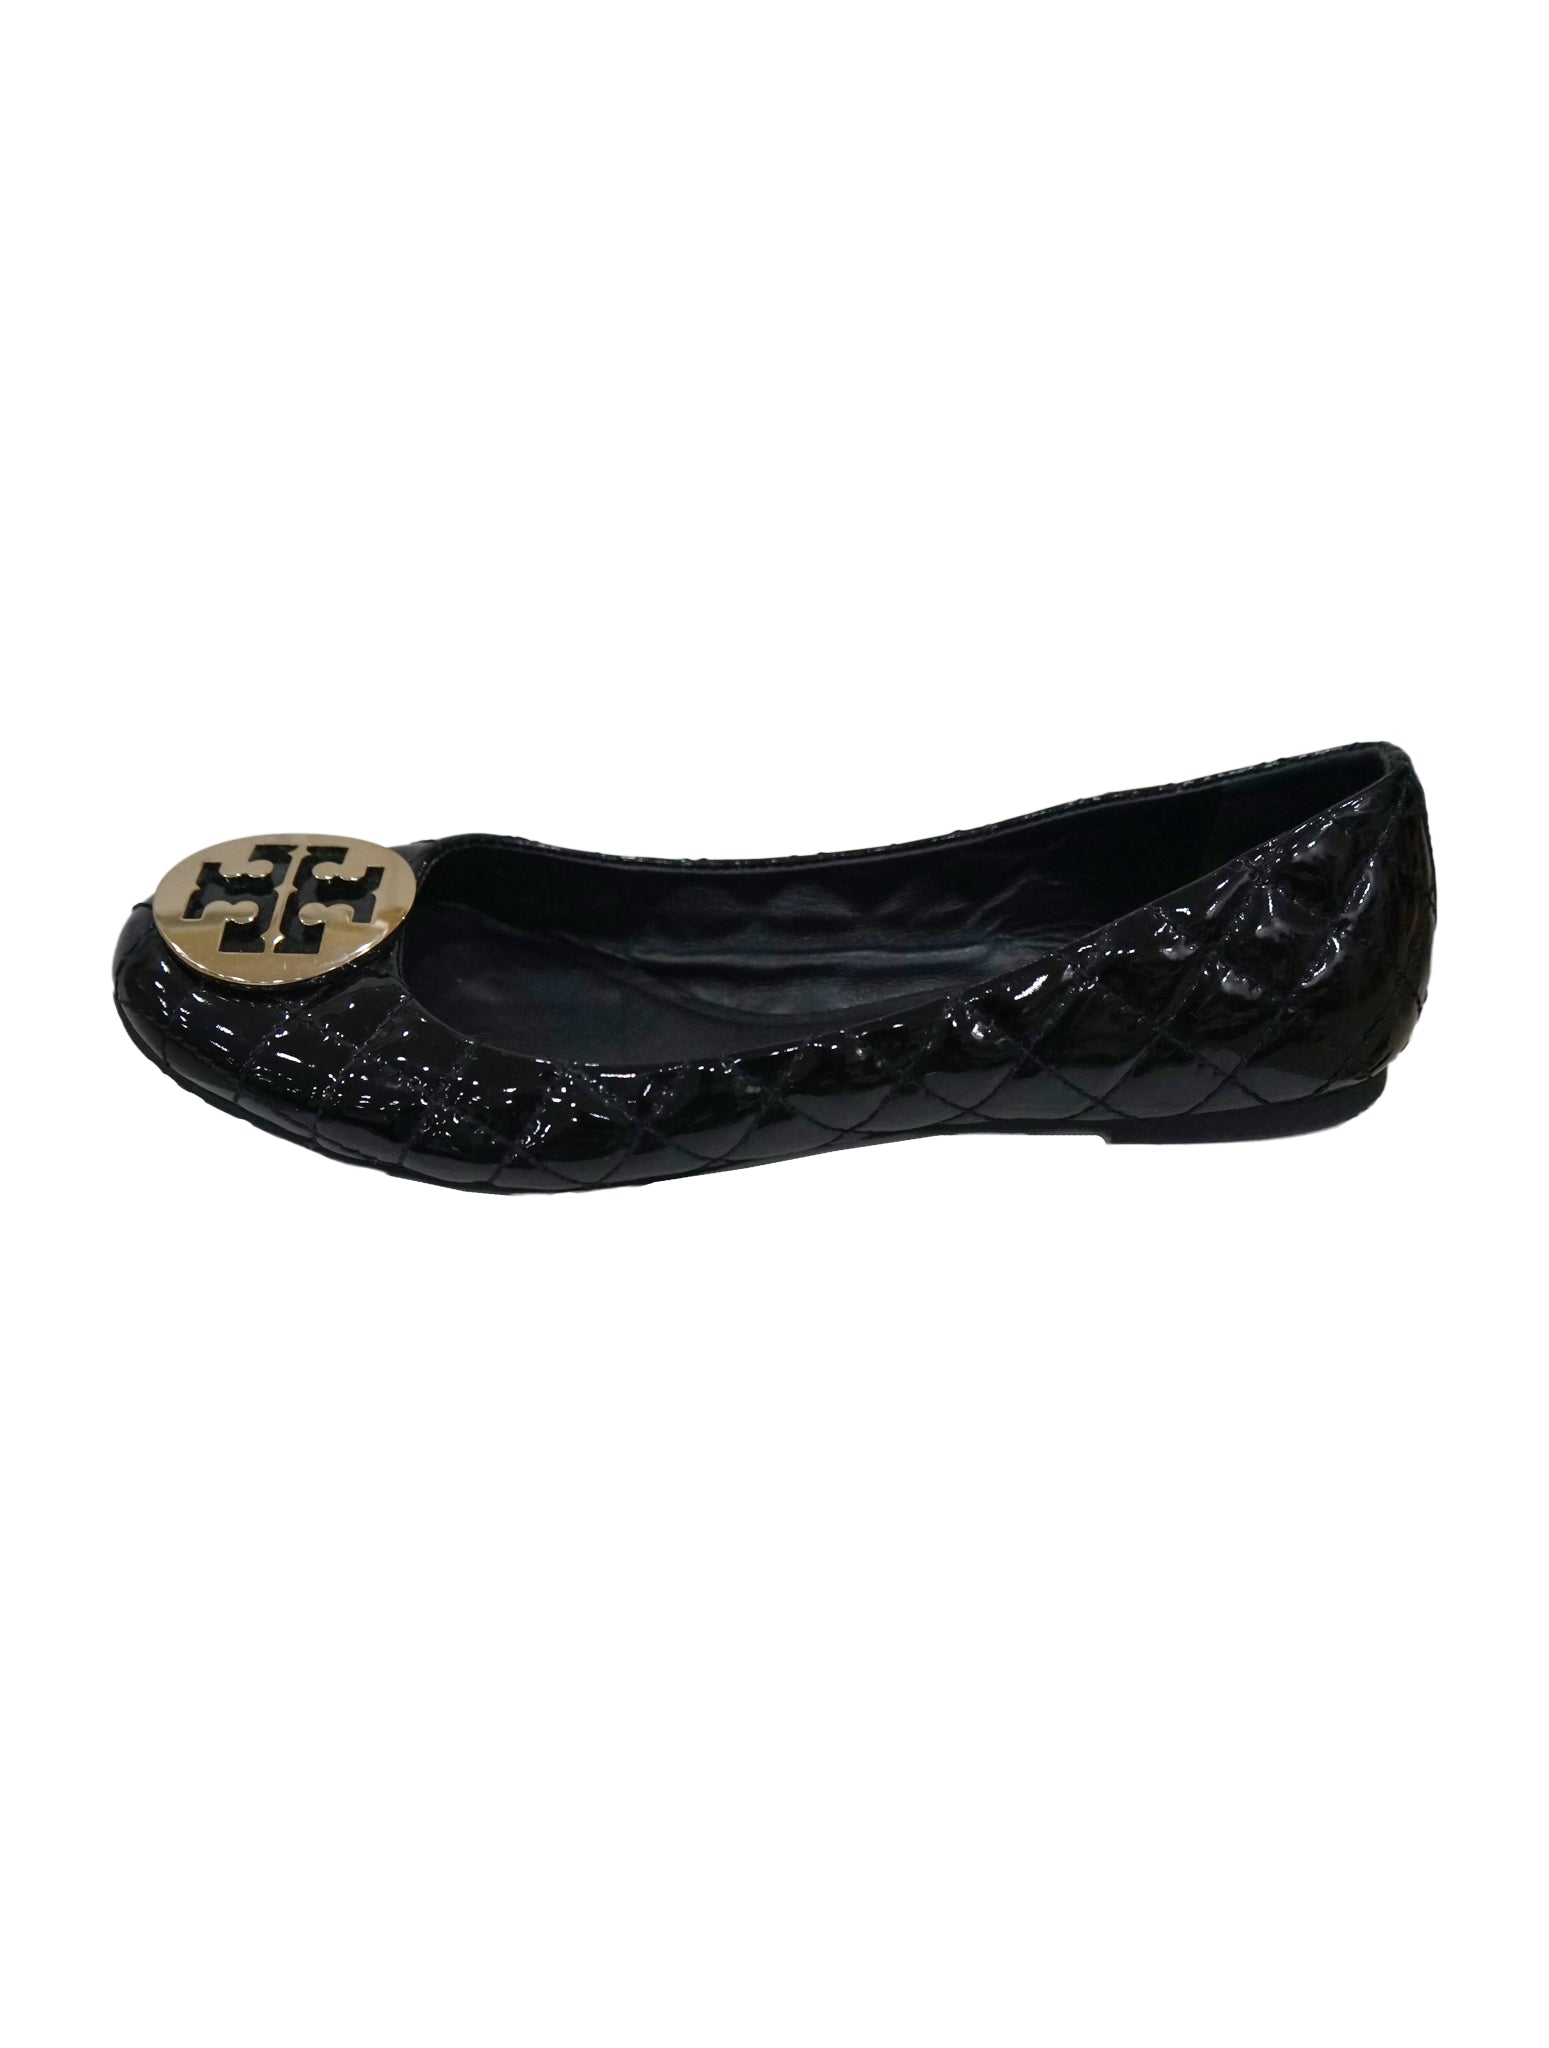 QUILTED LEATHER QUINN BALLET FLATS SIZE 40